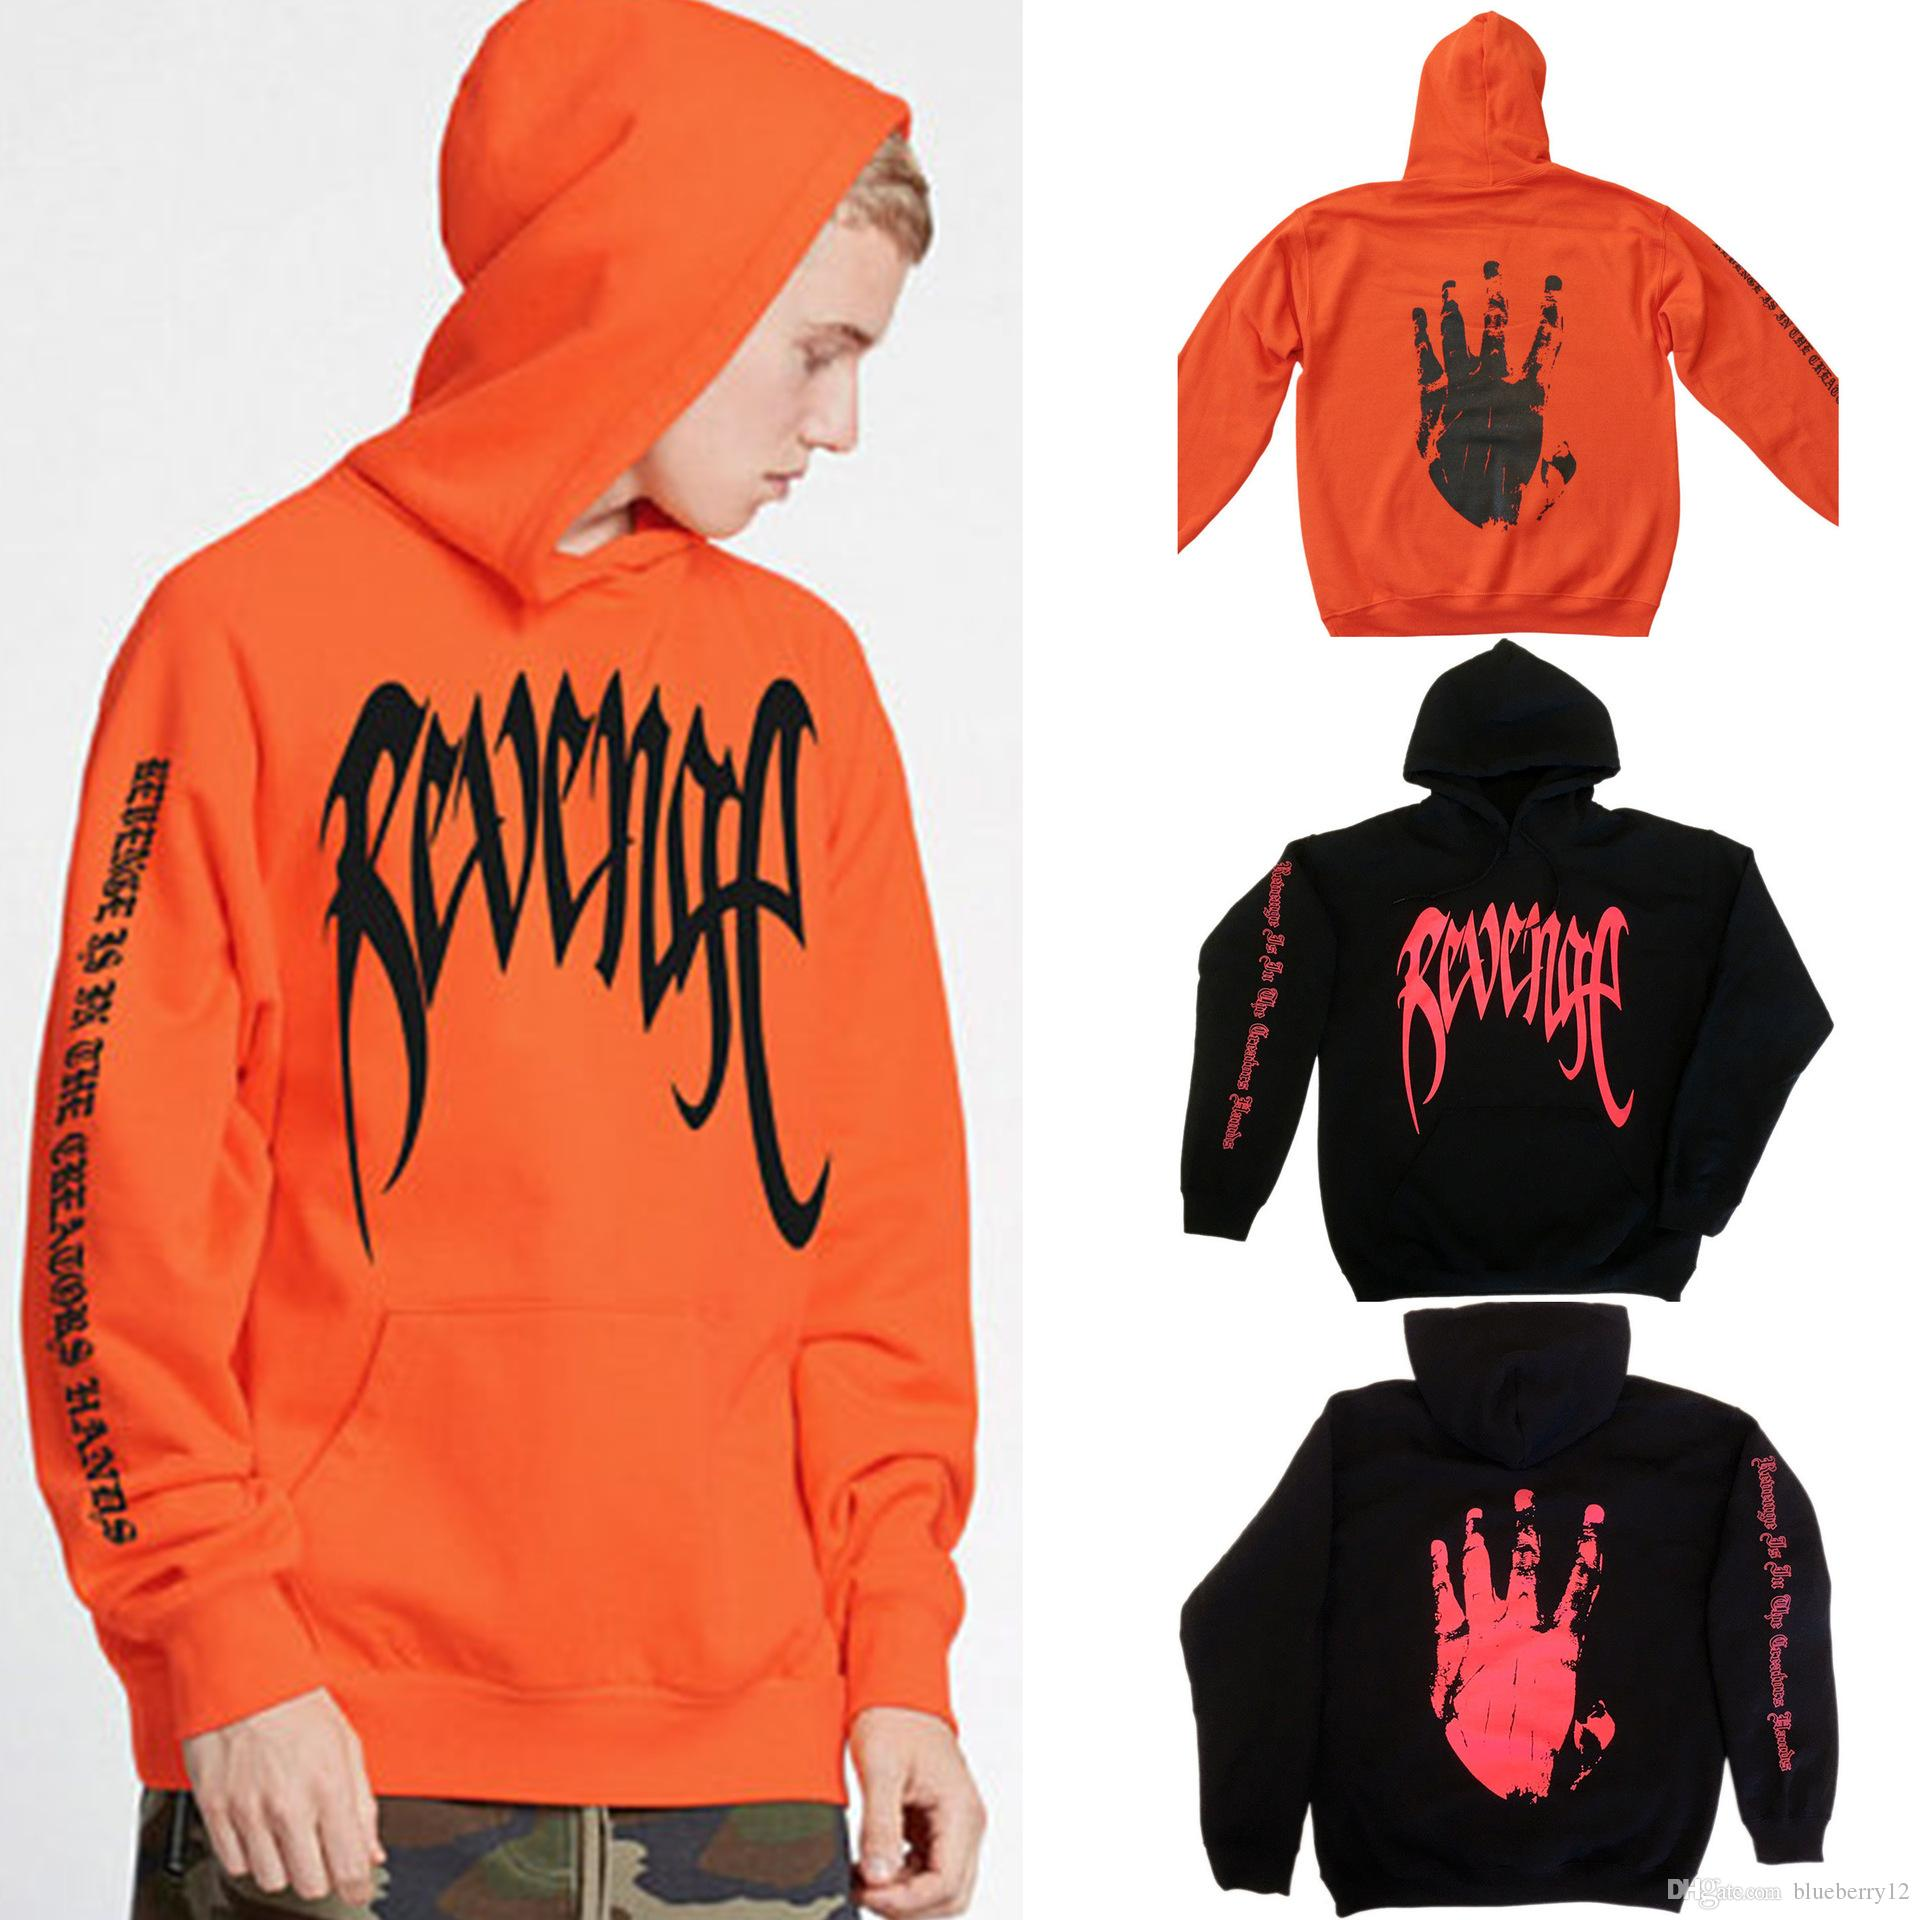 ad2d280a4c3 2019 REVENGE KILL HOODIE Hip Hop Pullover Mens Tentacion Bad Vibes Forever  Sweatshirts Cool Streetwear Hoodies From Blueberry12